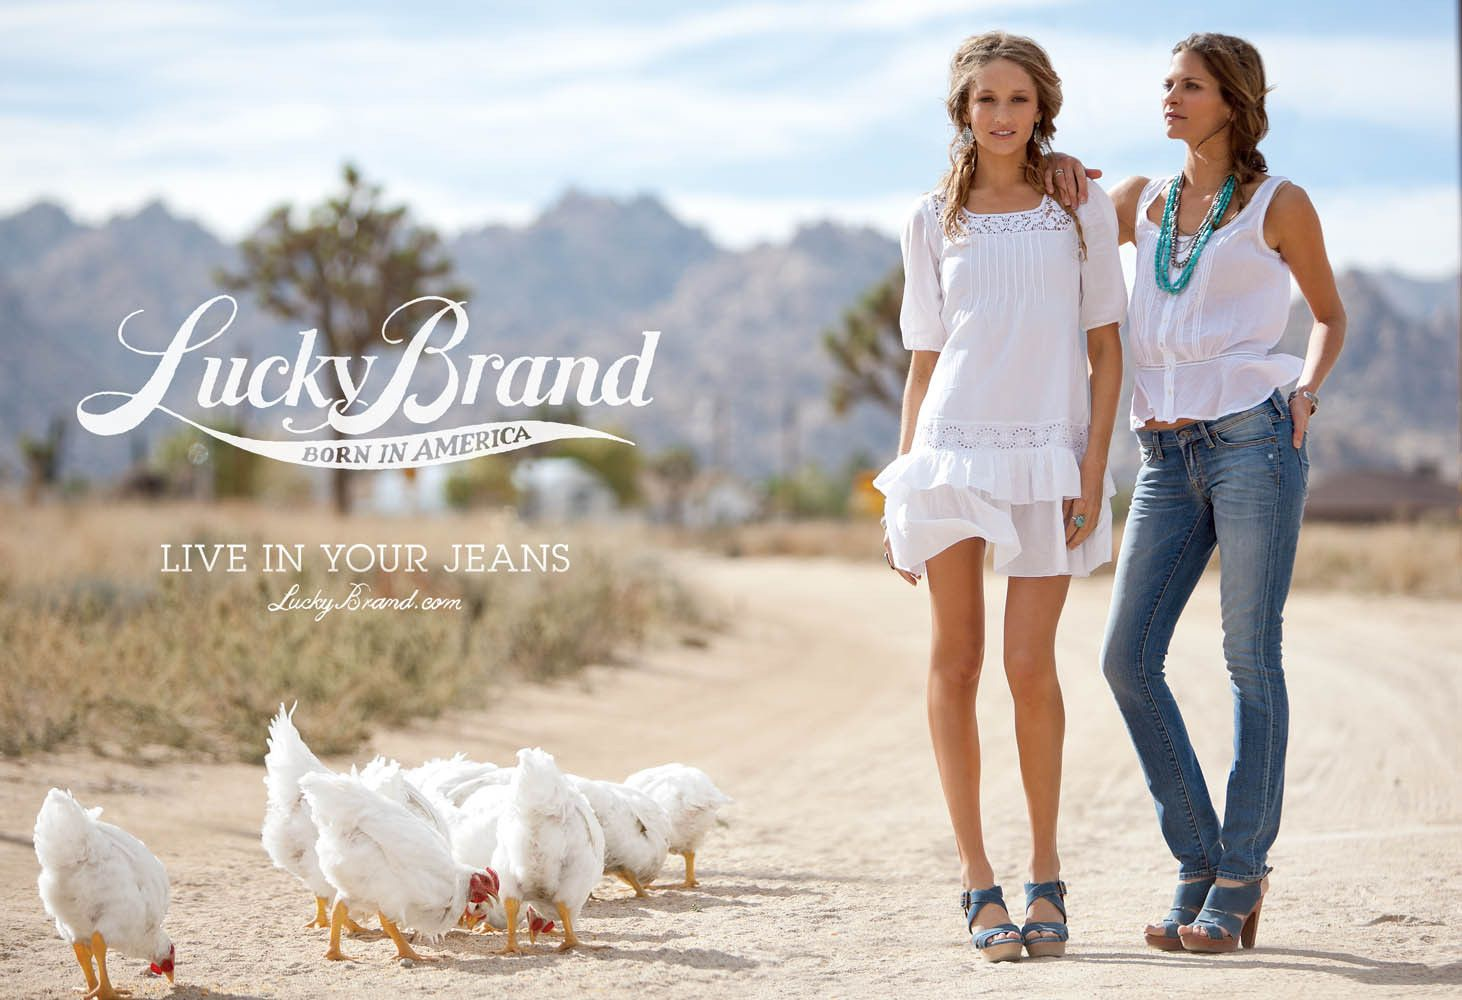 1lucky_brand_ad_campaign_summer_2011_0037.jpg